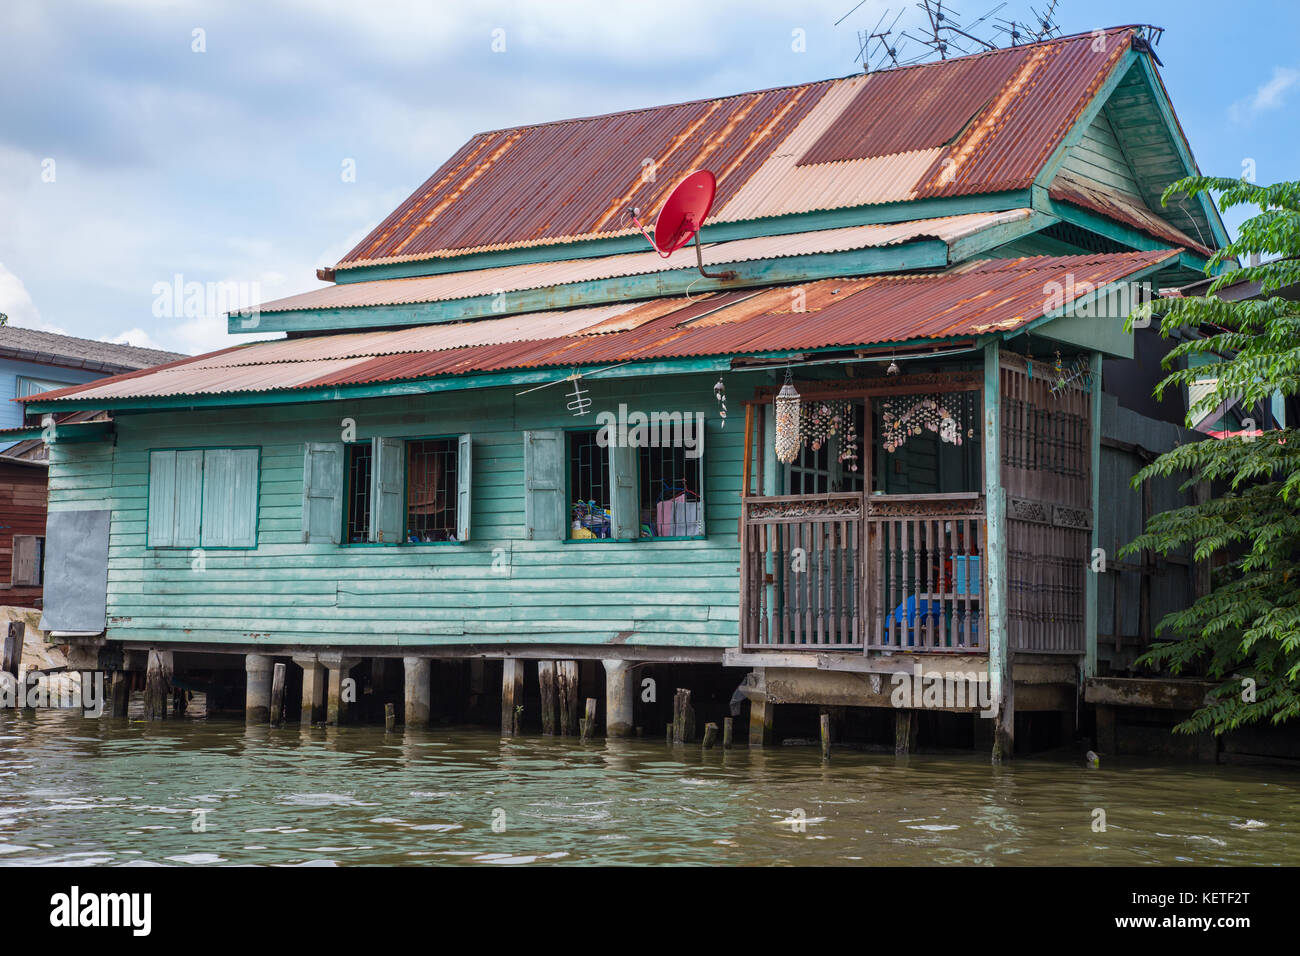 thailand bangkok house on river stockfotos thailand bangkok house on river bilder alamy. Black Bedroom Furniture Sets. Home Design Ideas